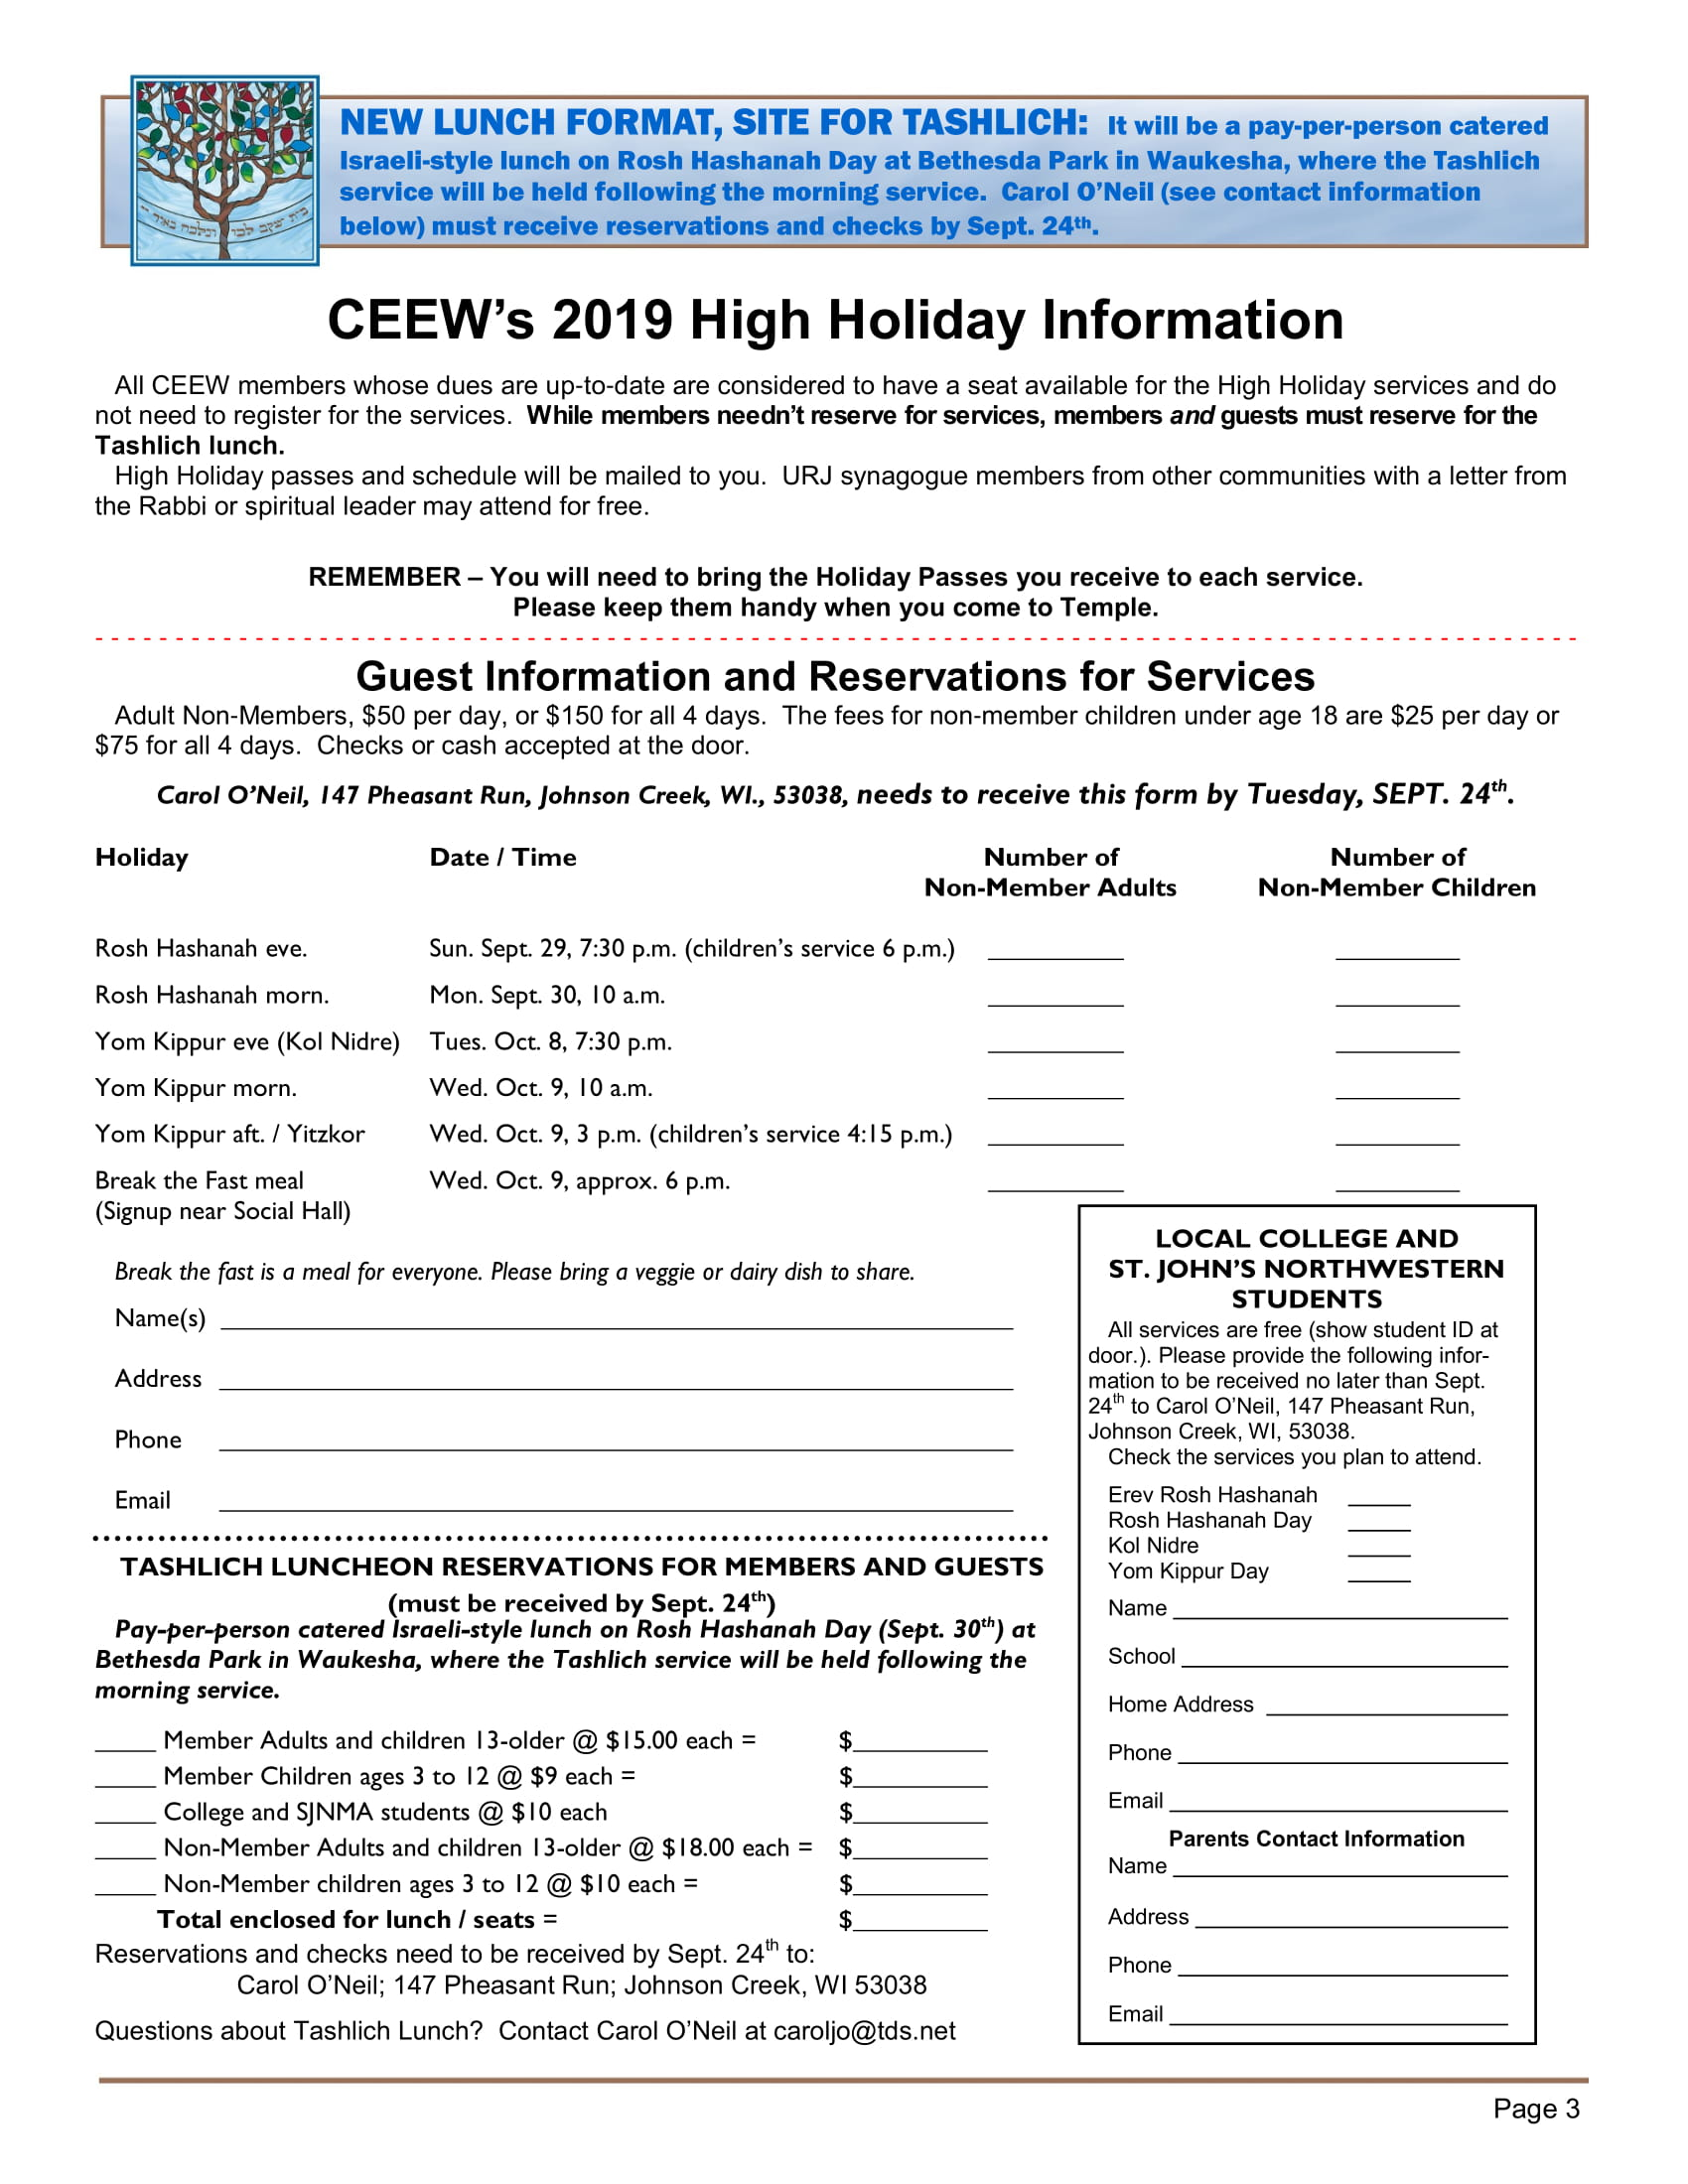 2019 HH Form UPDATED-1